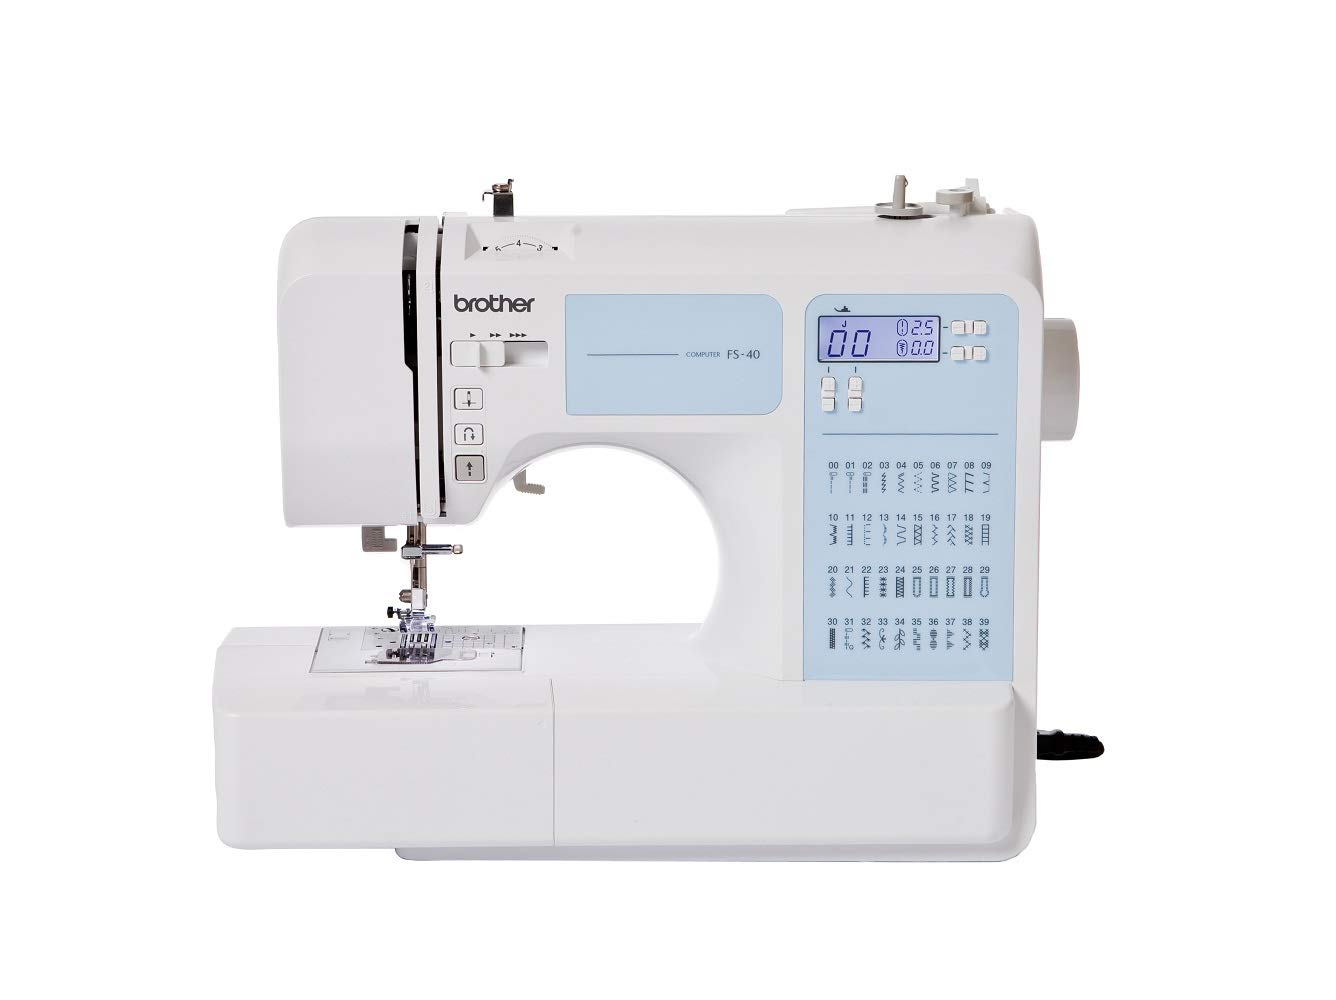 BROTHER FS 40 Máquina de coser product image